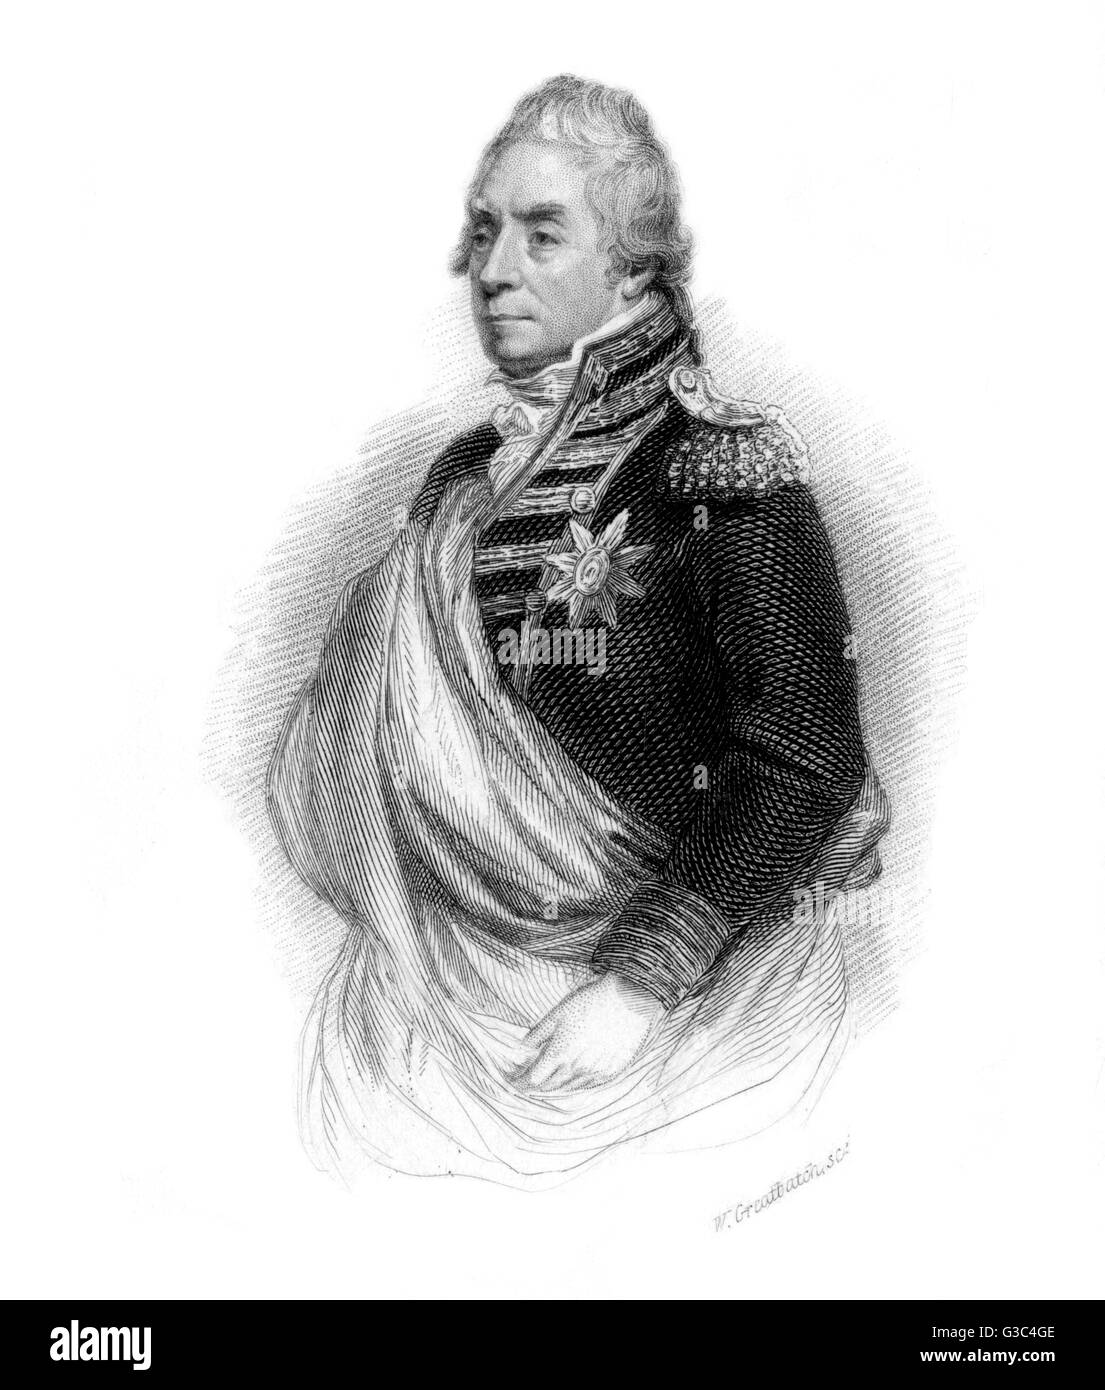 George Keith Elphinstone, 1st Viscount Keith (1746-1823), British naval admiral active throughout the Napoleonic - Stock Image